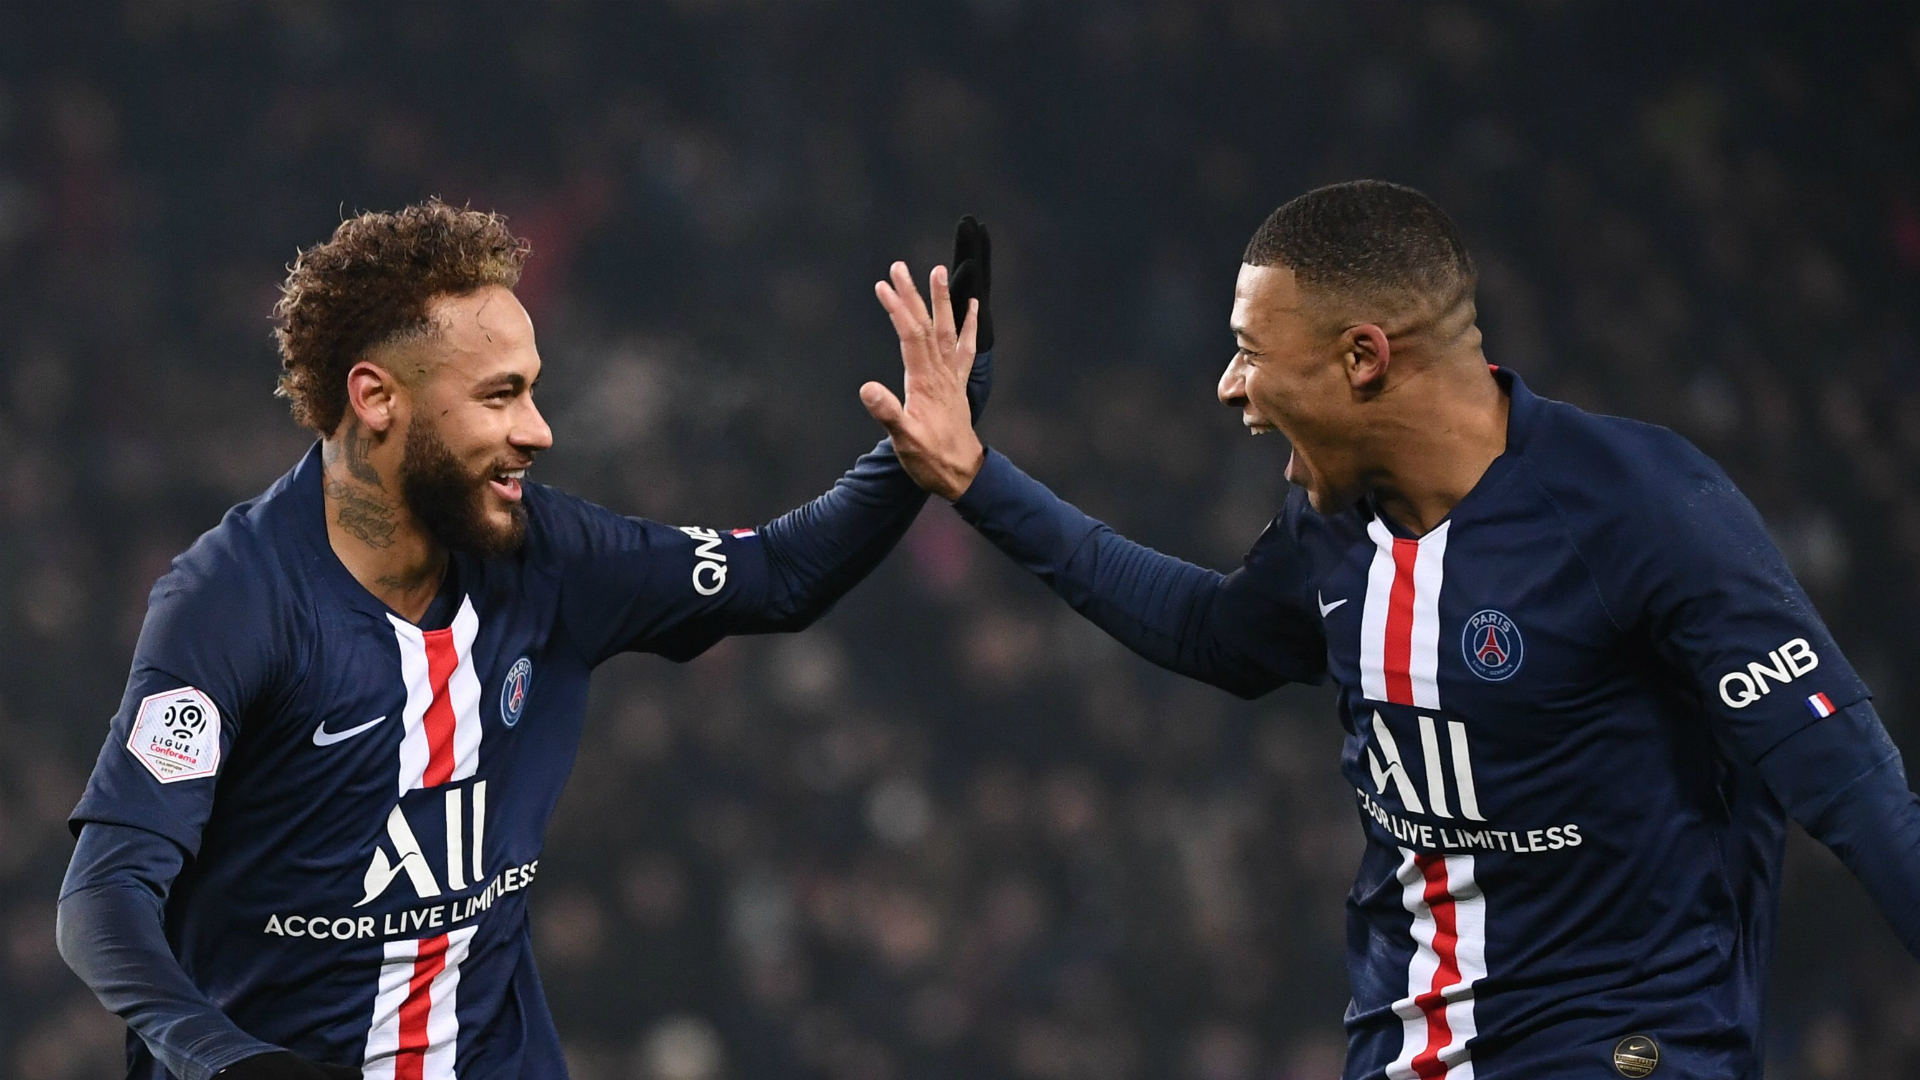 Tuchel sees PSG pair Neymar and Mbappe starting to click again